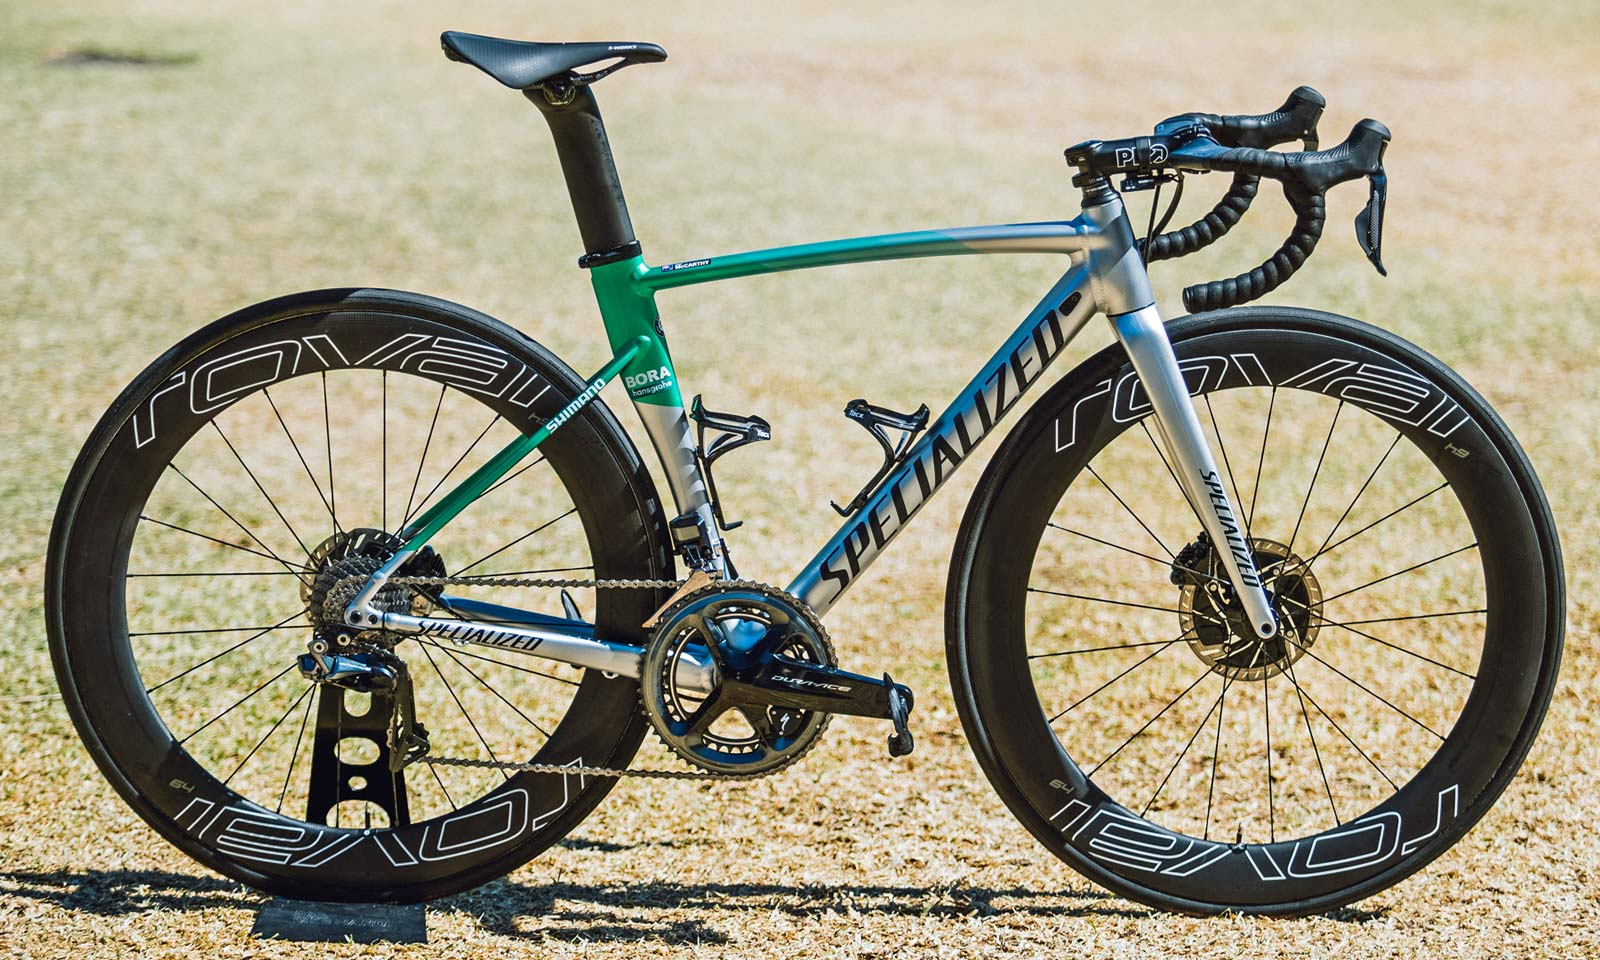 Specialized Allez Sprint Disc, alloy road race bike fit for a pro